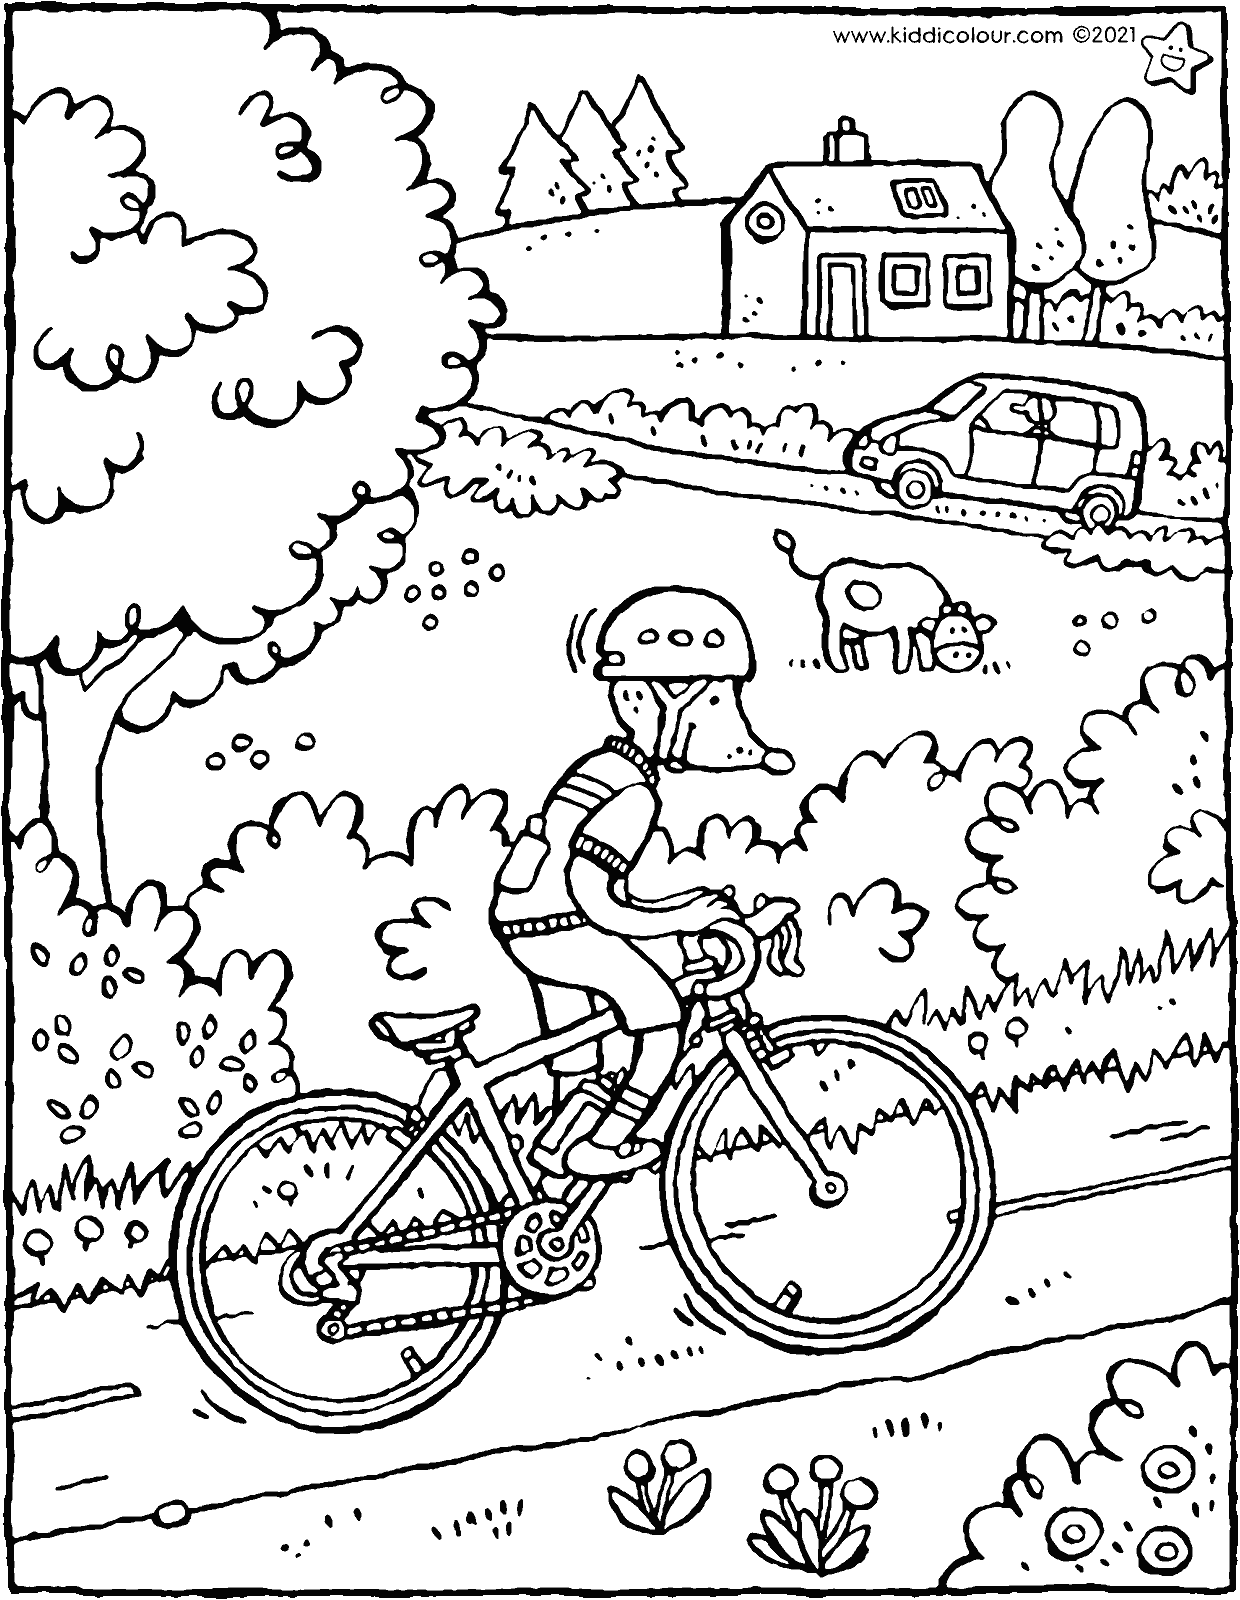 Thomas cycles up the hill colouring page drawing picture 01V